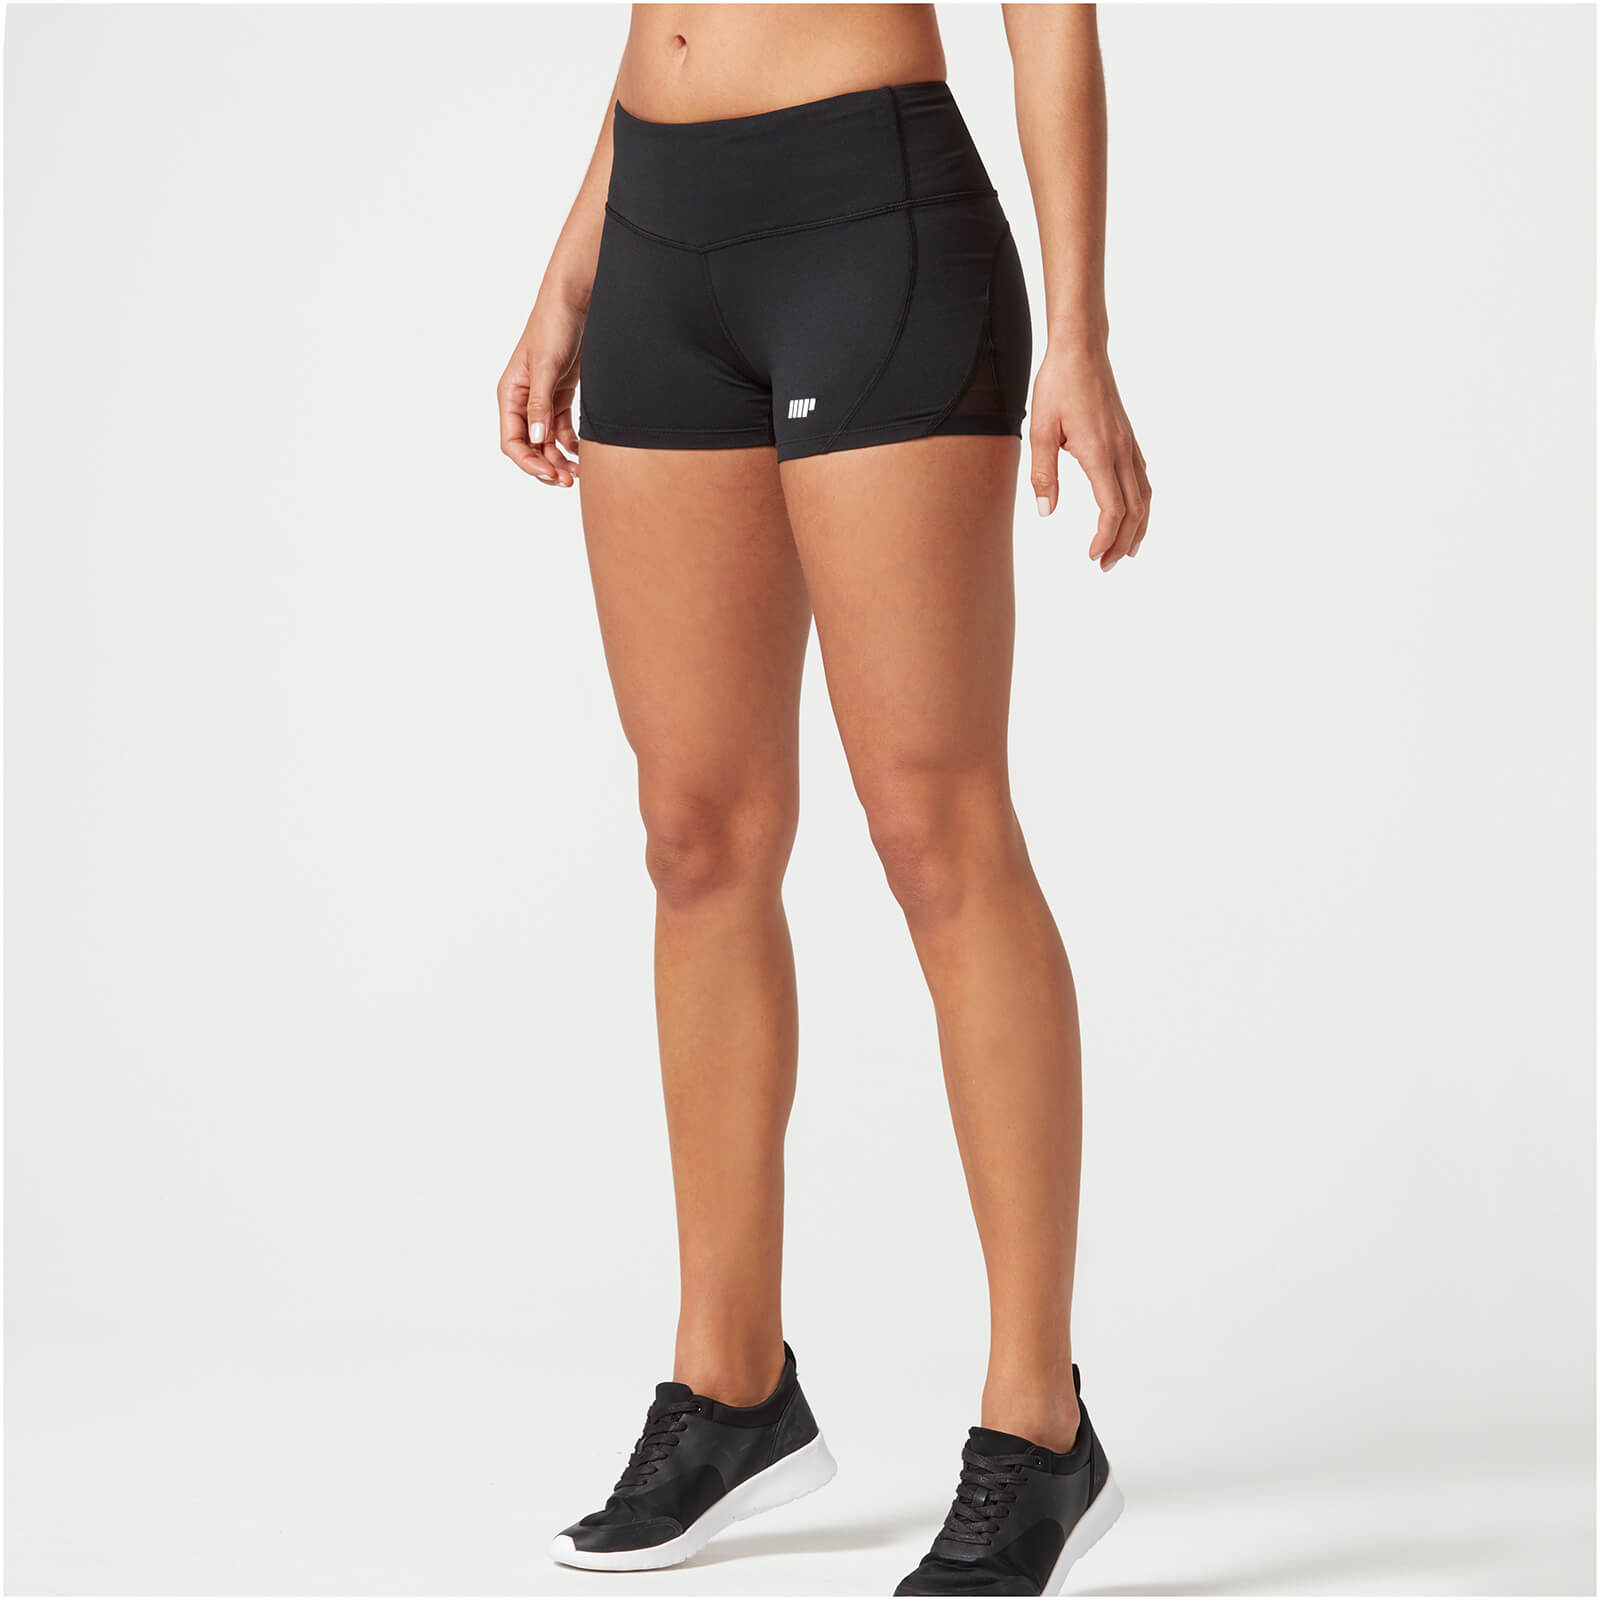 Heartbeat Shorts - Black - XS